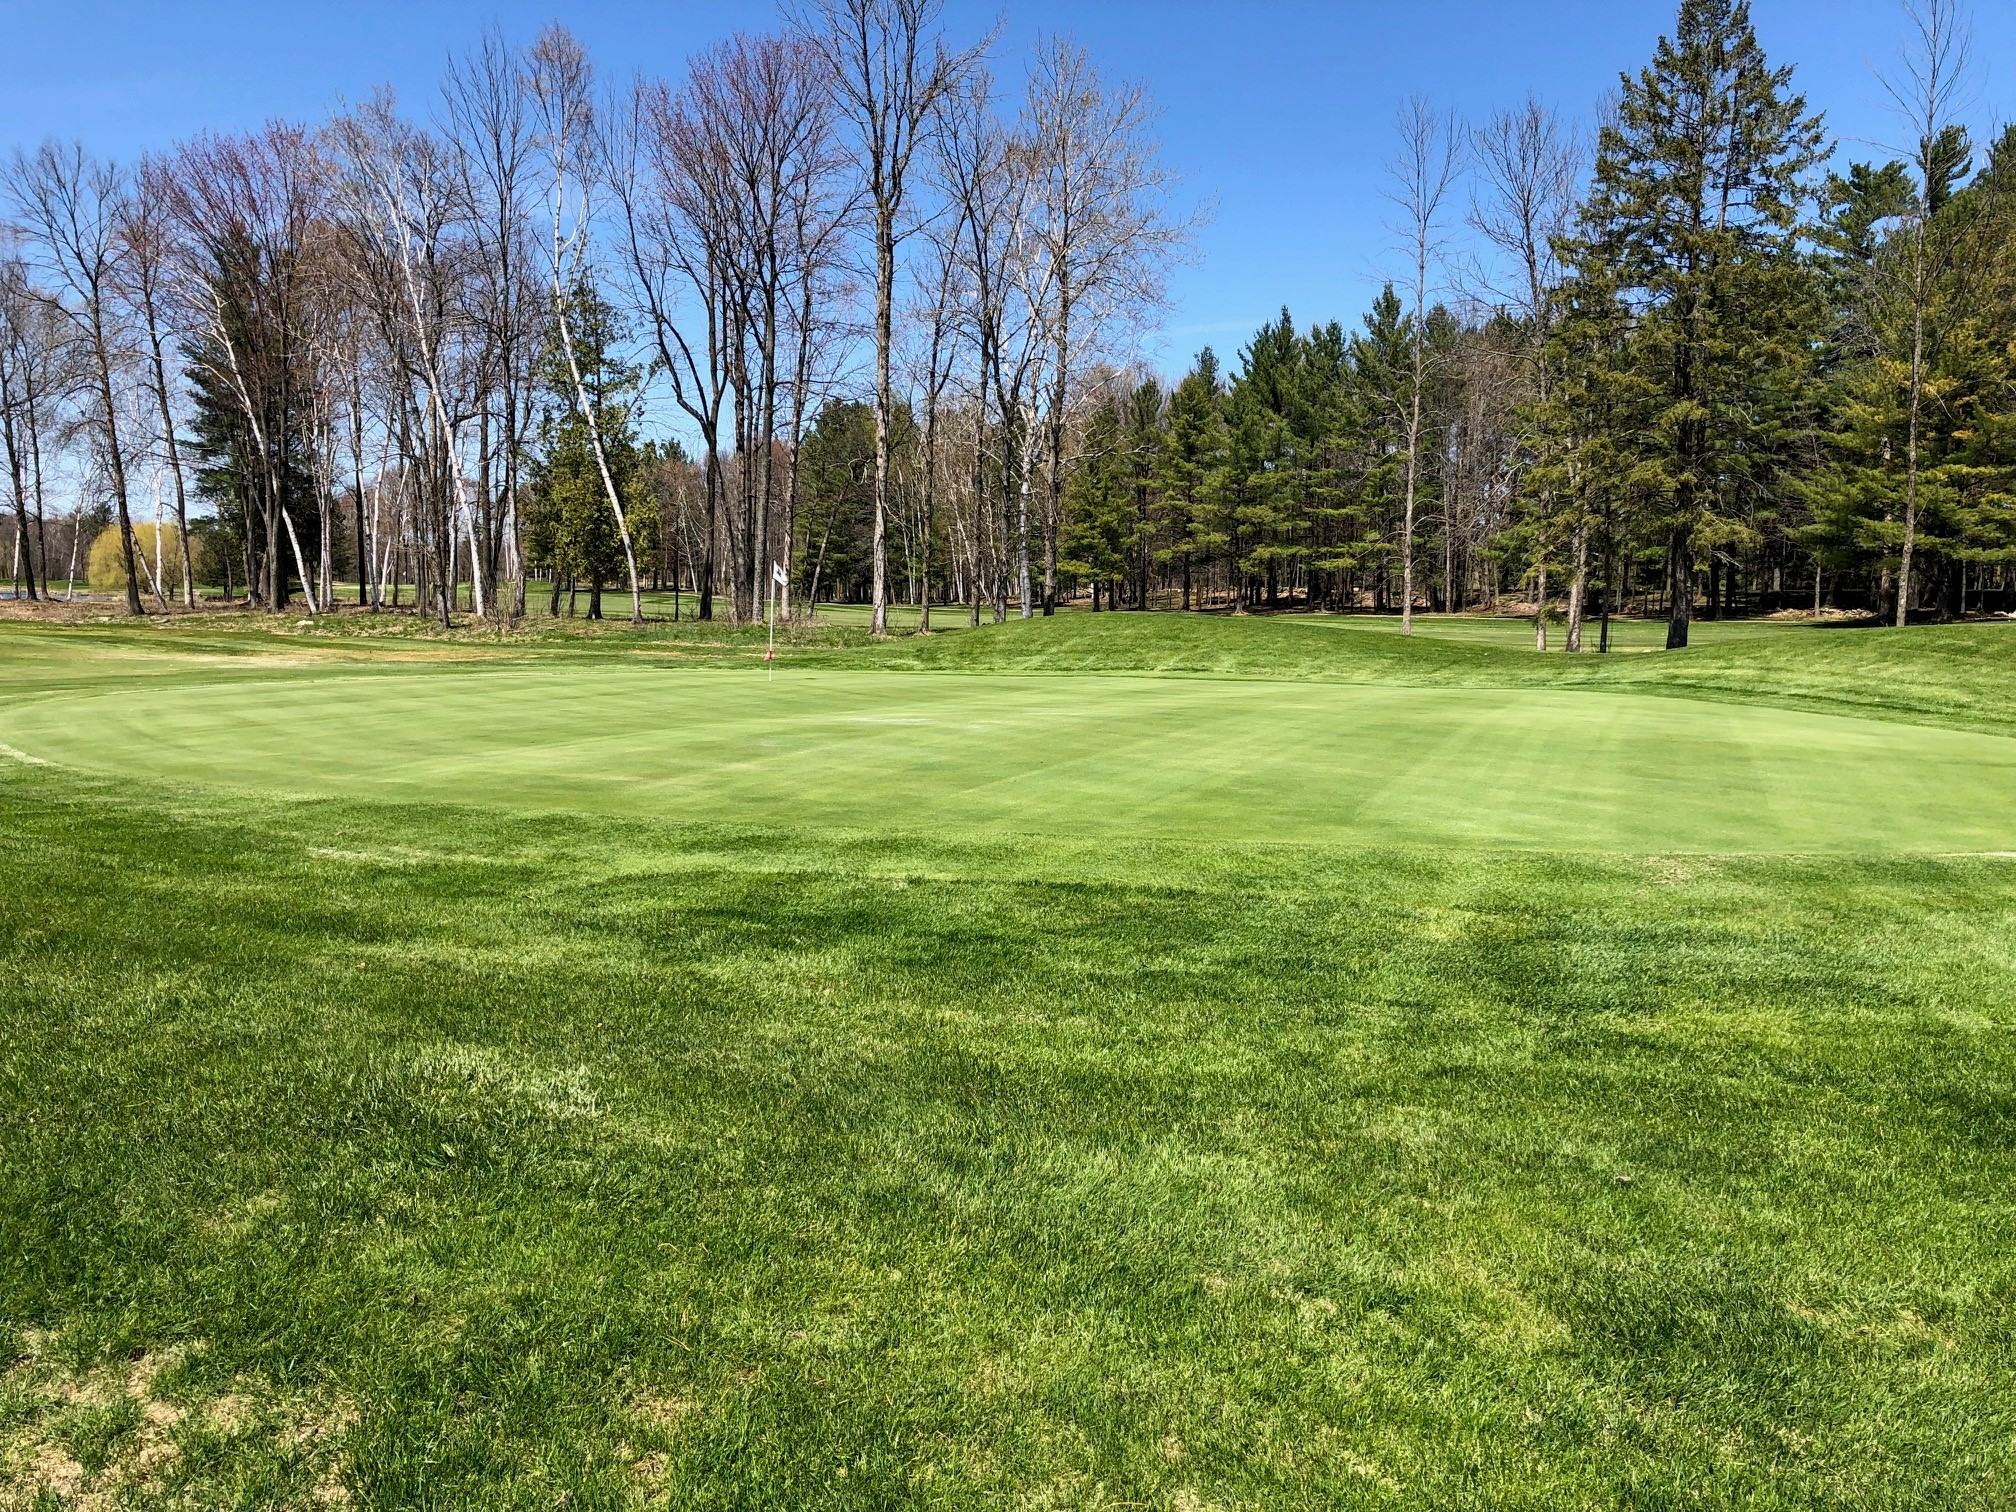 14th hole green - photo taken on May 8, 2019